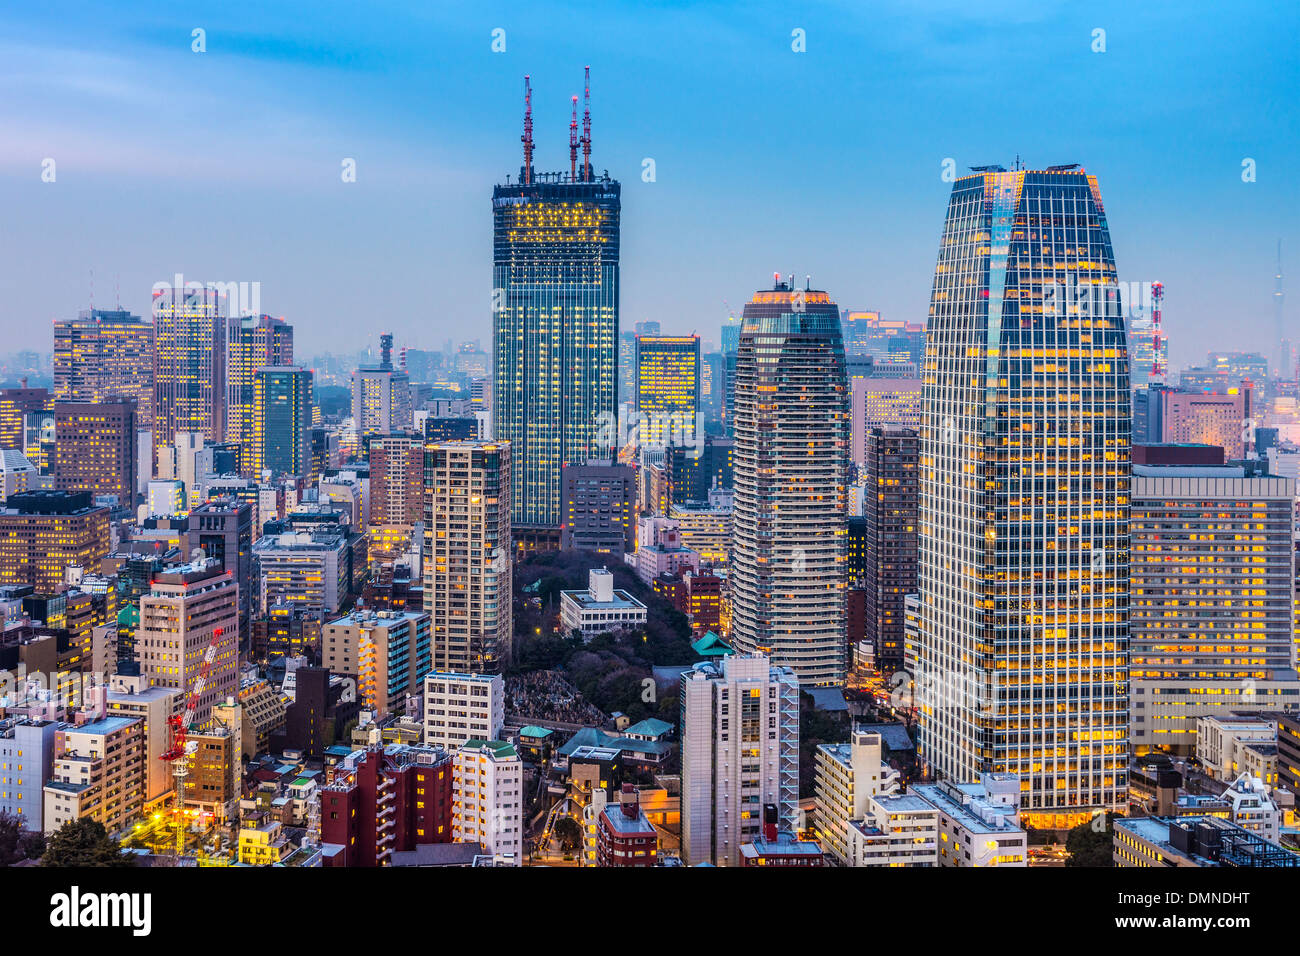 Tokyo, Japan cityscape and office buildings in Minato Ward. - Stock Image